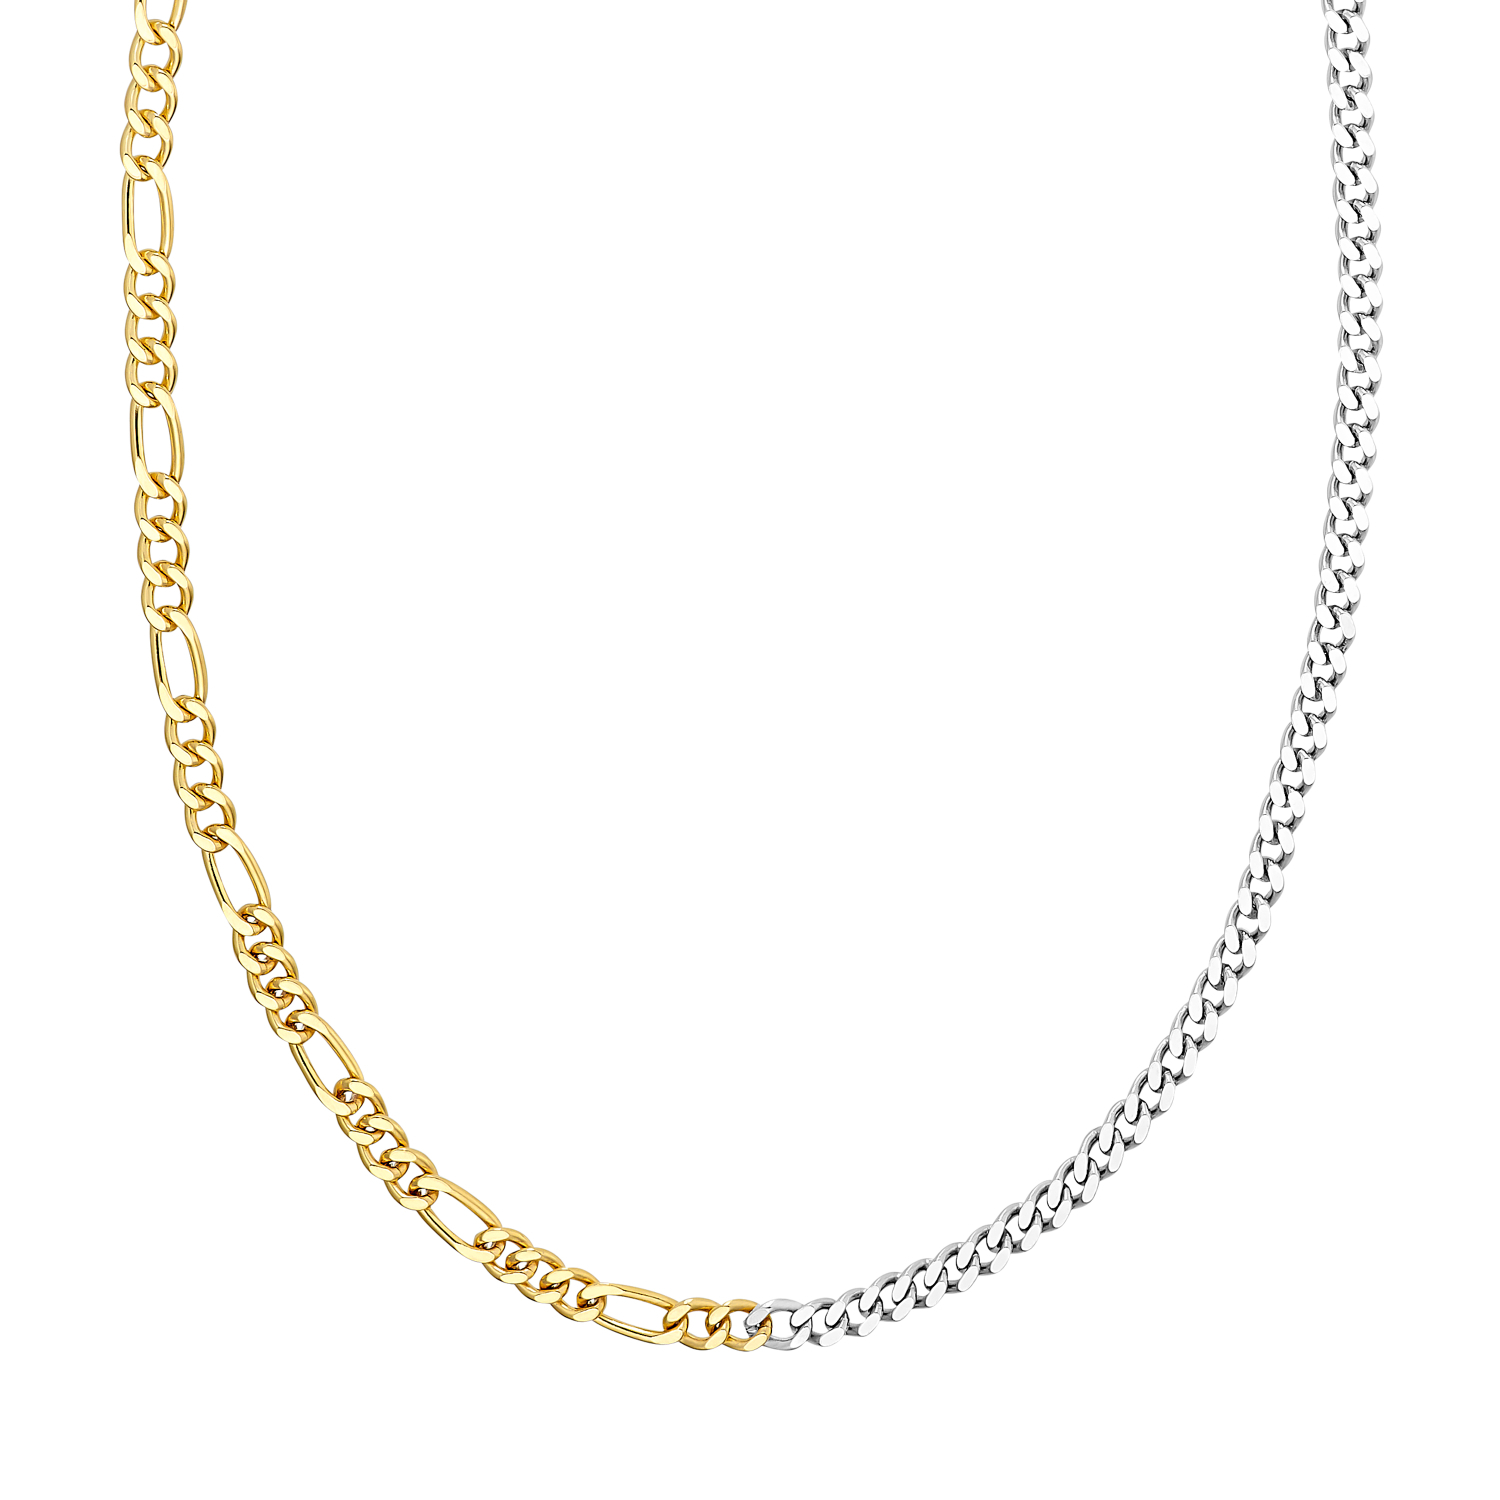 CHAIN MIX KETTE BICOLOR